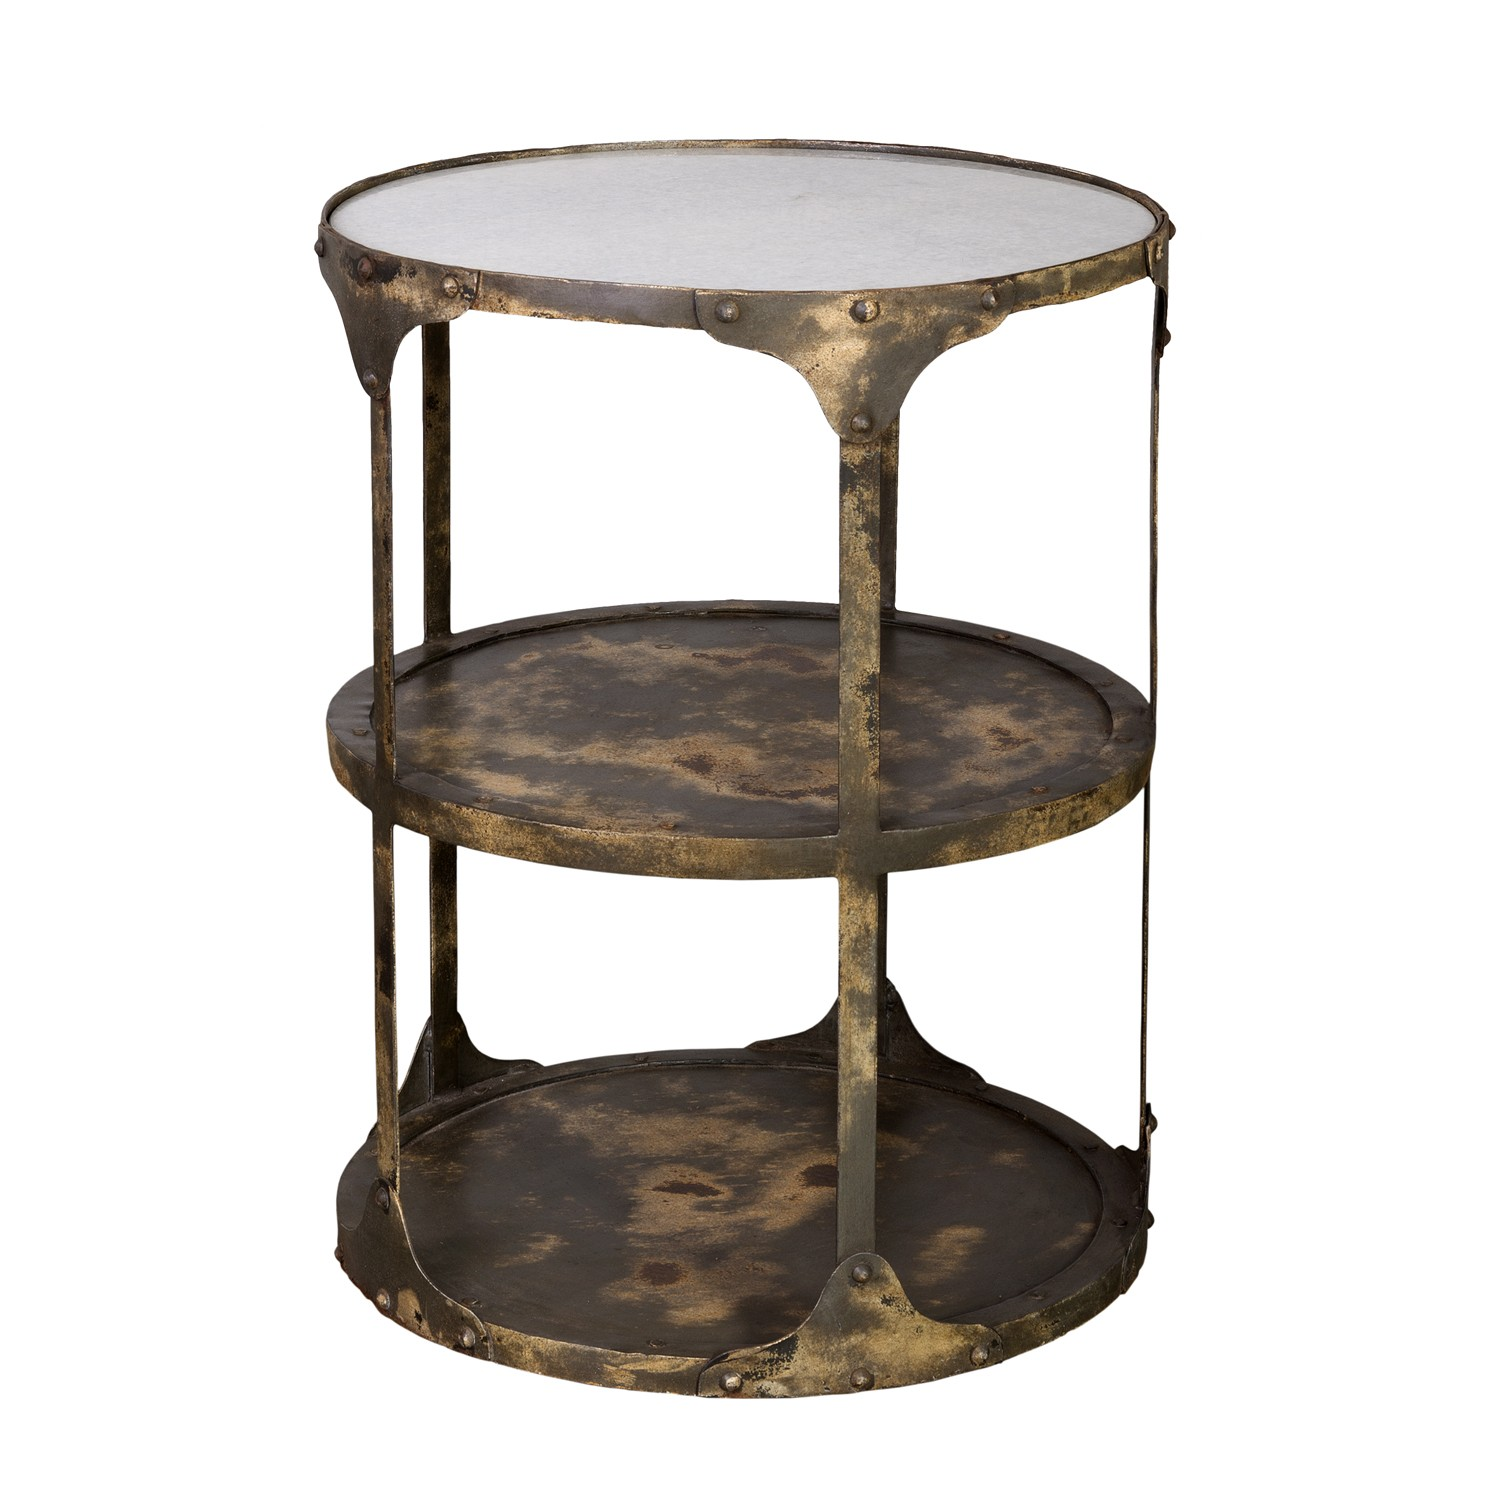 with circle tables furniture shop gold round table primrose side design coffee metal top a hammered linked plum based and